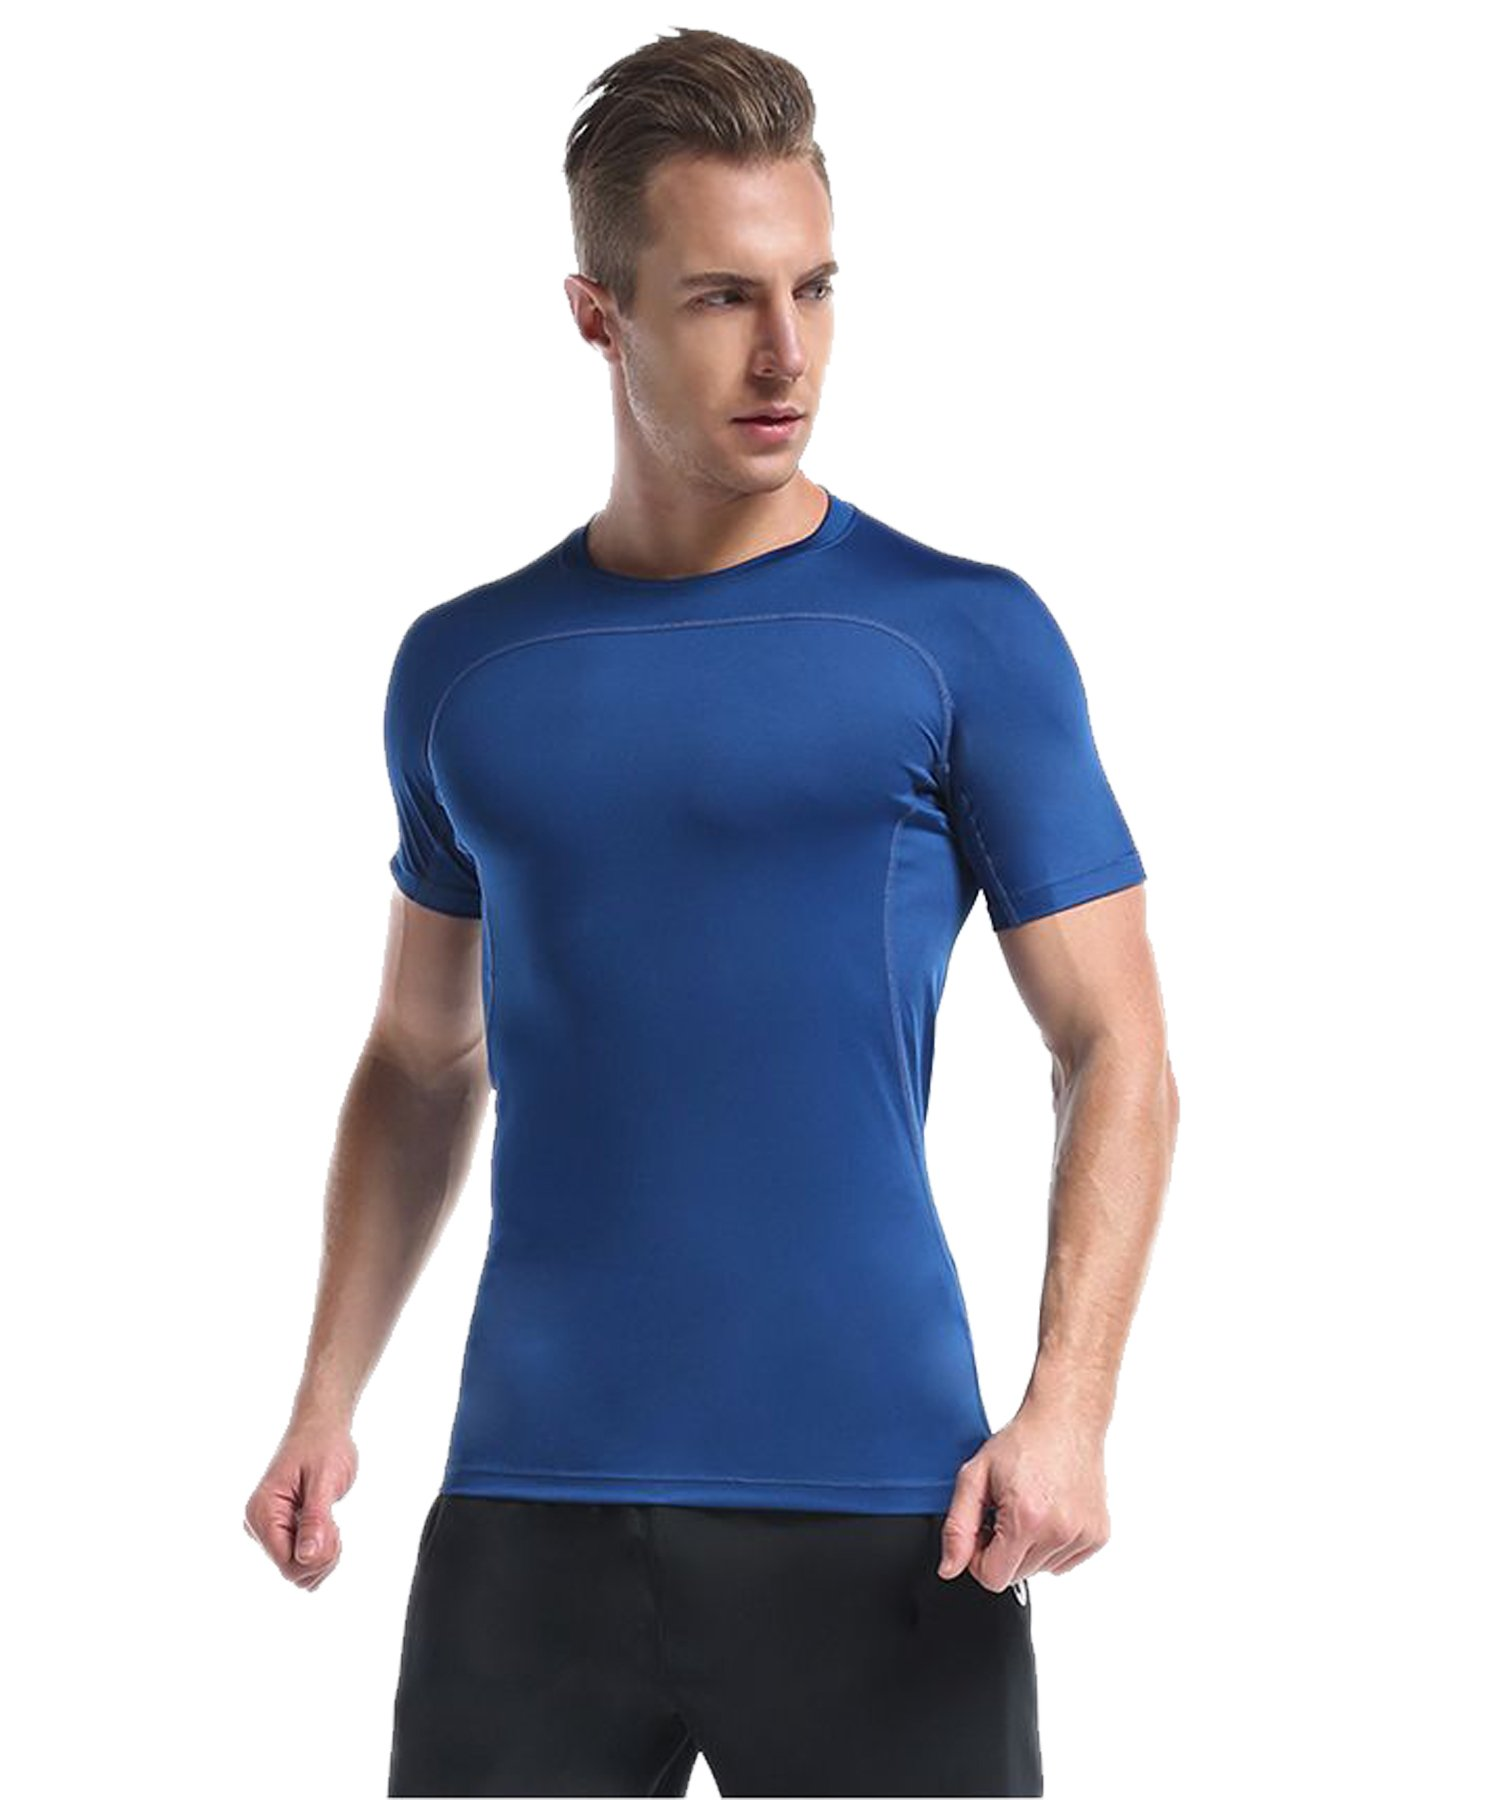 CAIKENI Men's Compression Short Sleeve T Shirts Cool Dry Baselayer for Fitness & Athletic Stretch Sport Shirt Bule XXXL